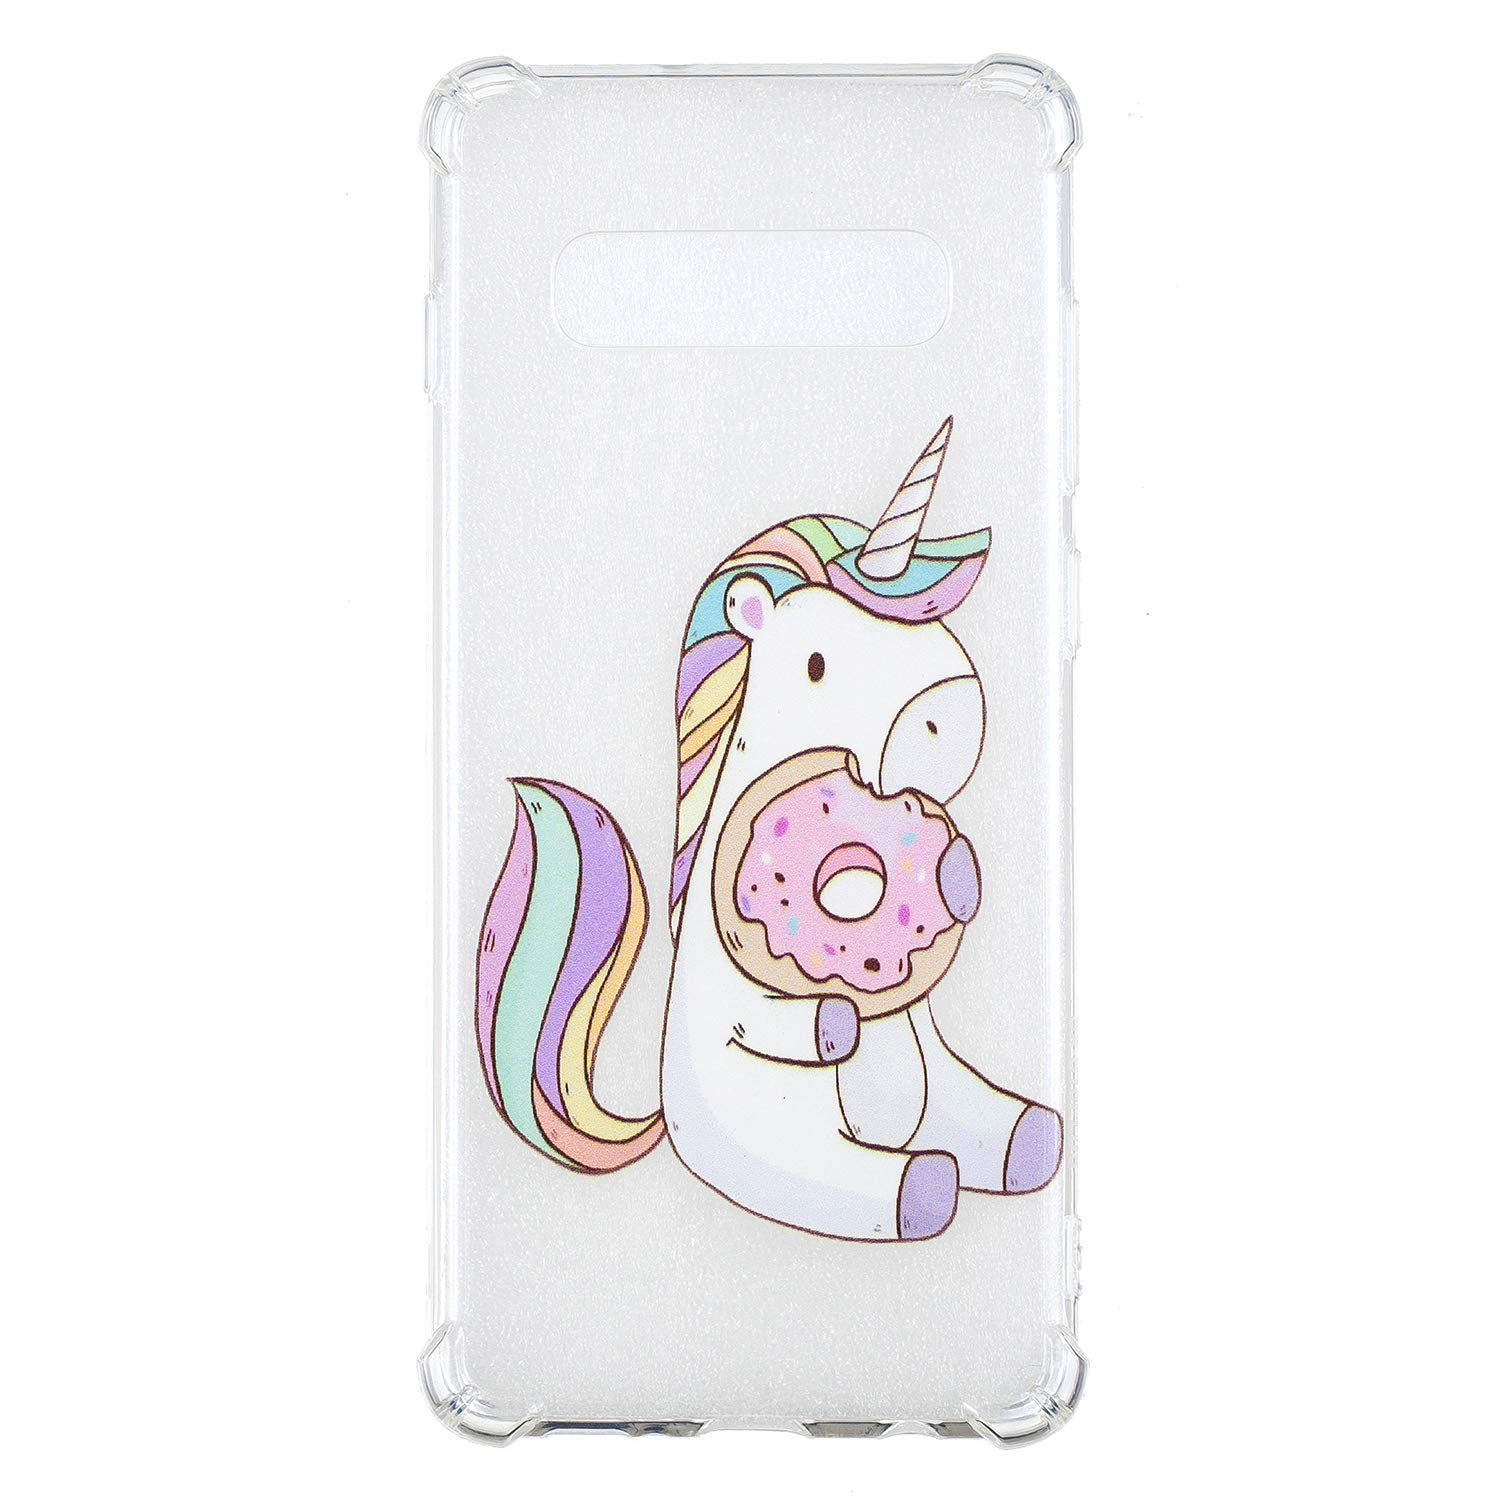 Galaxy S10+ Case, for [S10+], MerKuyom Lightweight [Clear Crystal Transparent] Slim-Fit Flexible Gel Soft TPU Case Cover for Samsung Galaxy S10+ / S10 Plus, W/Stylus (Cute Biscuit Horse)